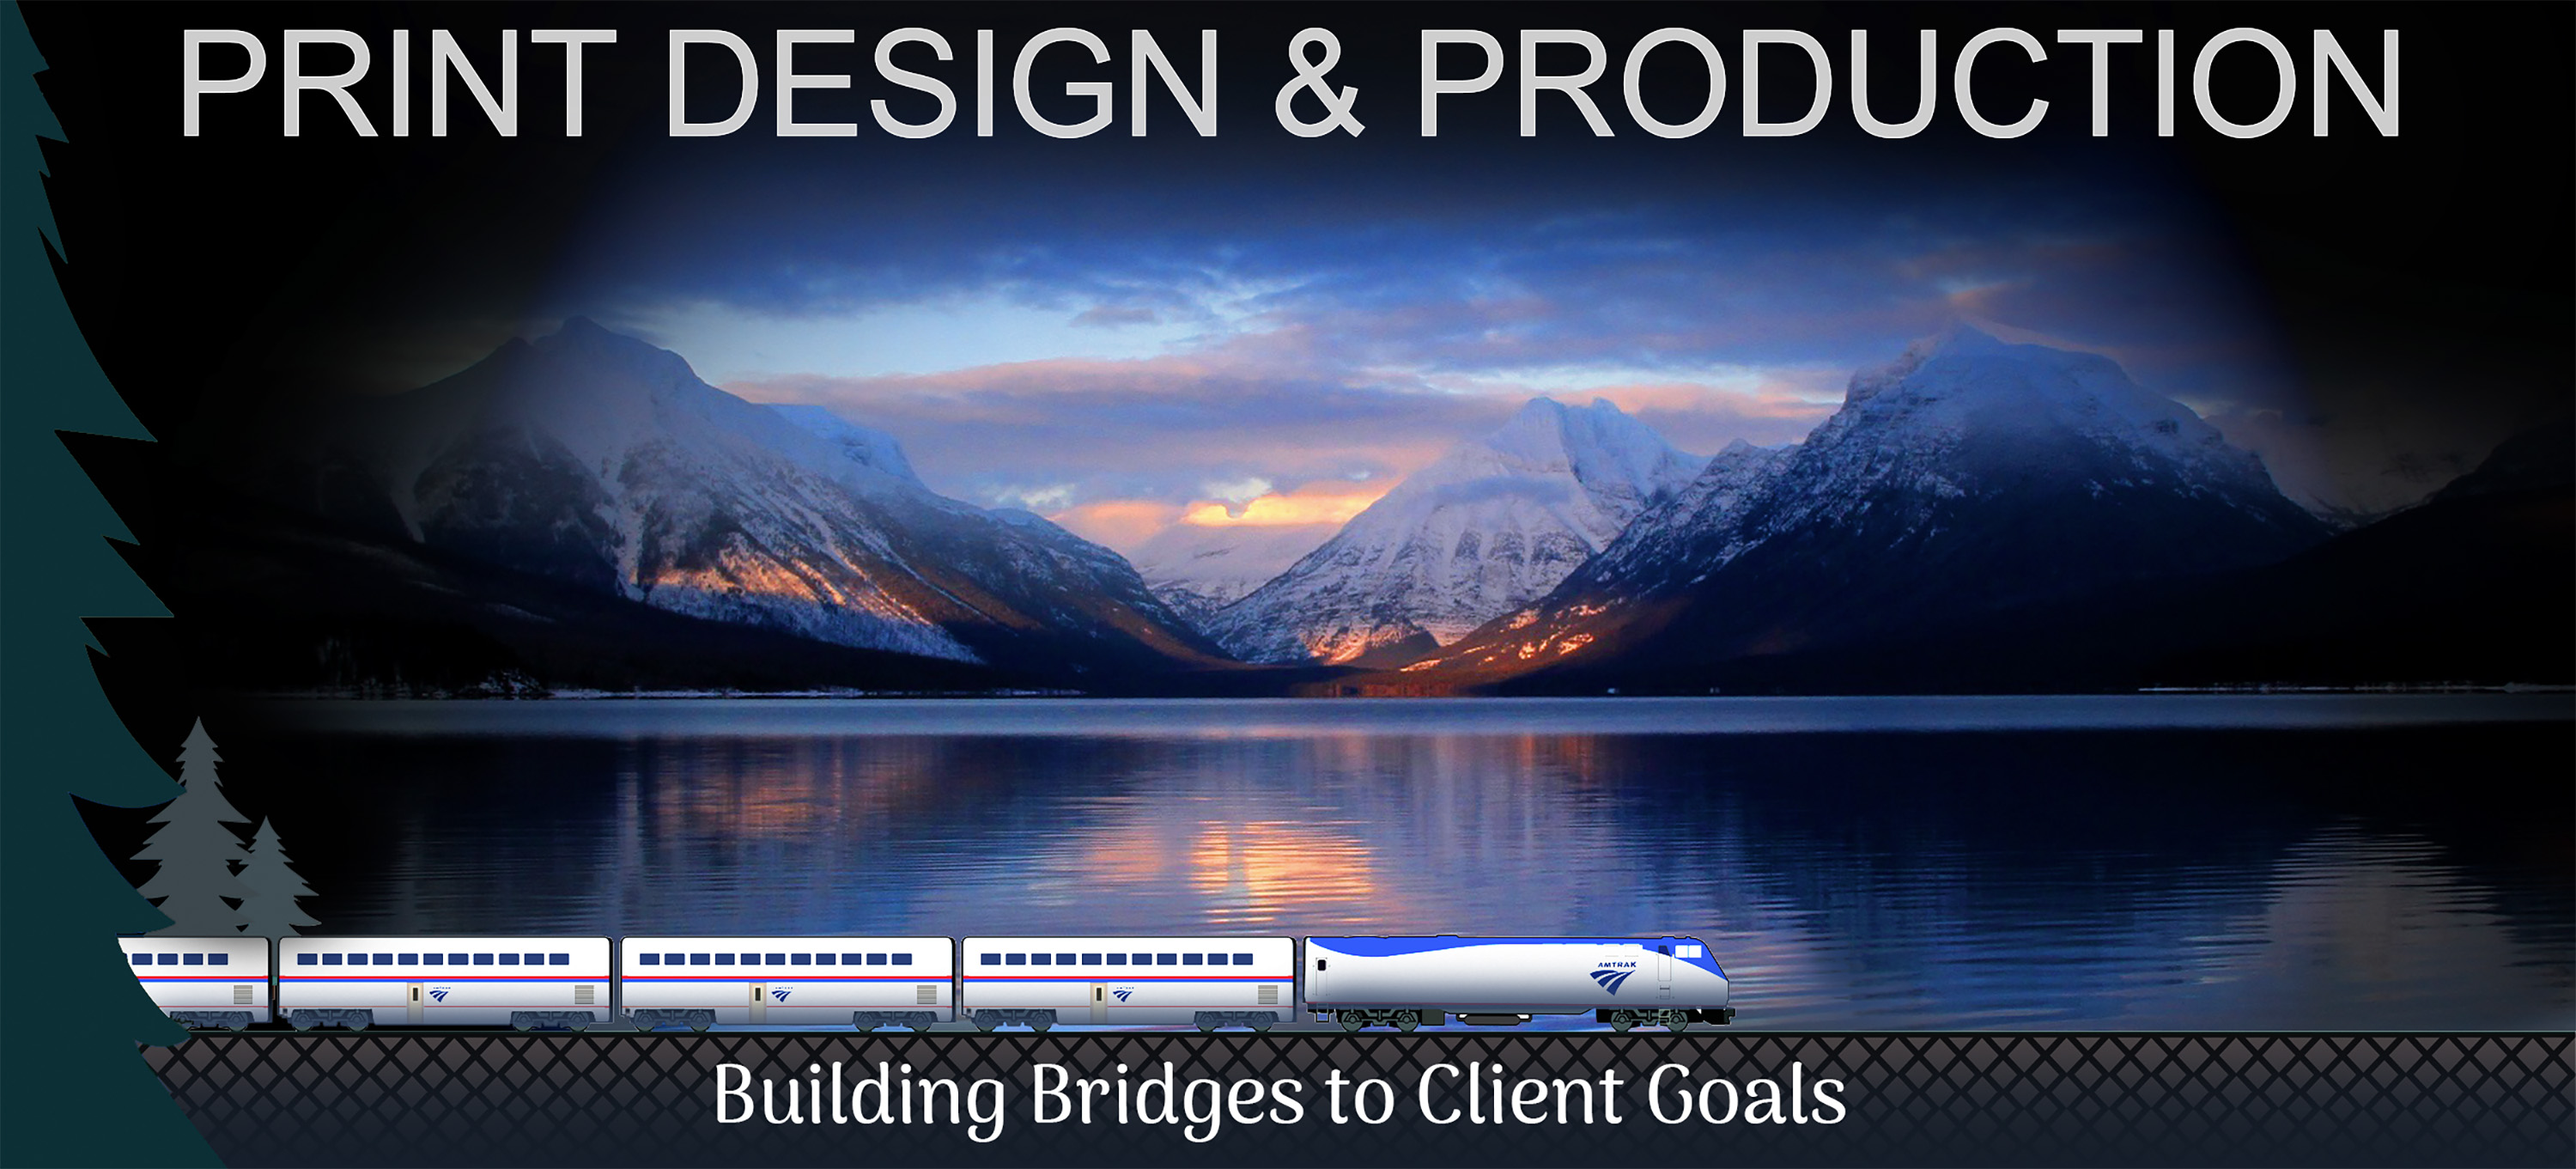 Print Design & Production: A traditional bridge to reach your communication goals